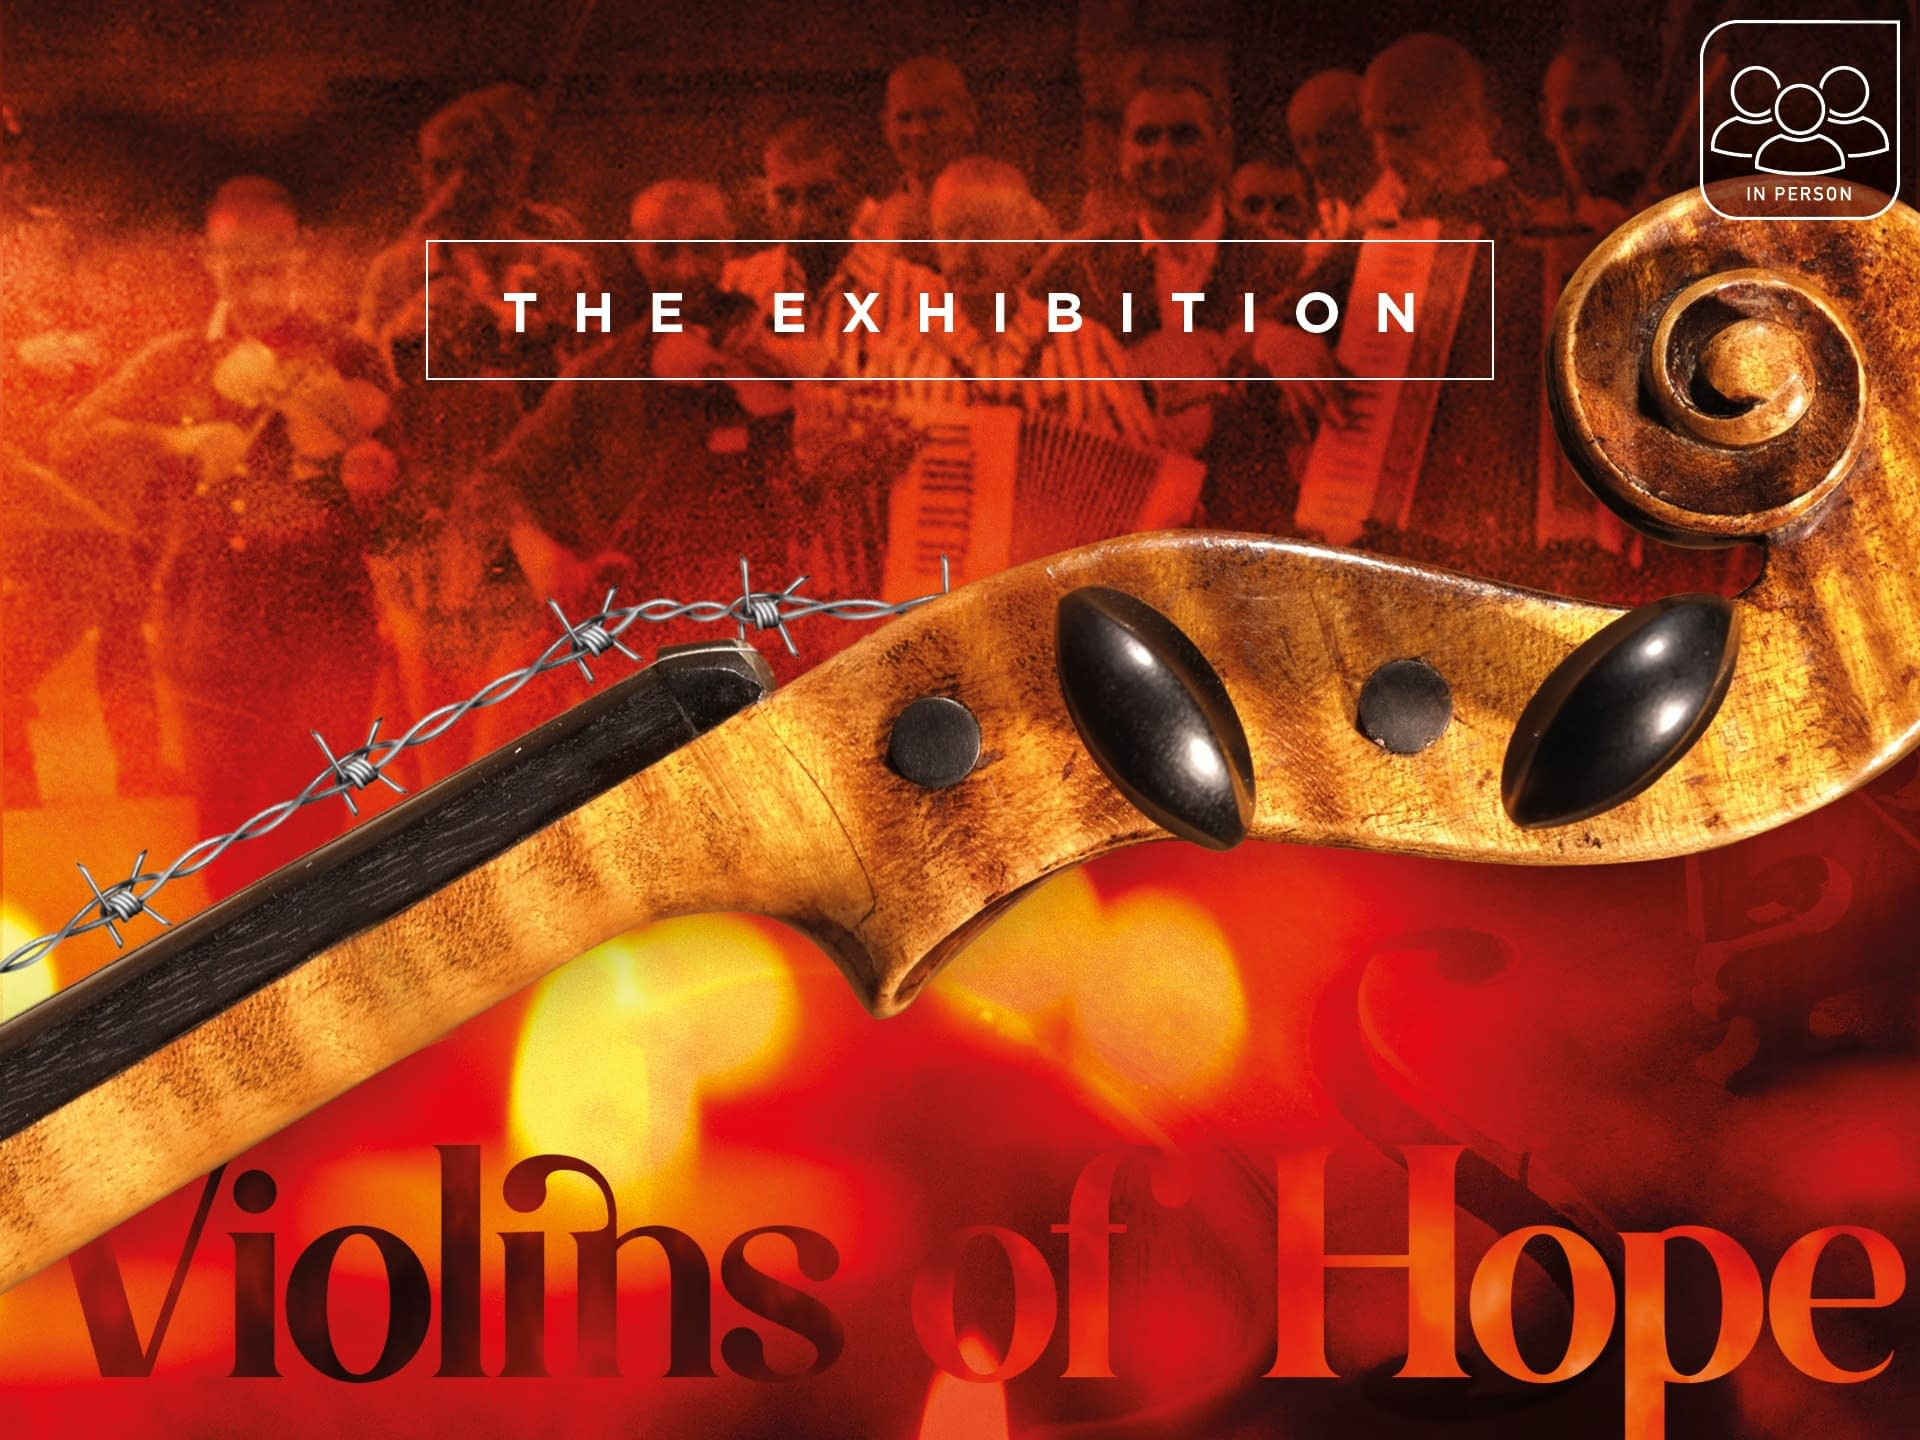 Violins of Hope: The Exhibition 3 - - InPerson